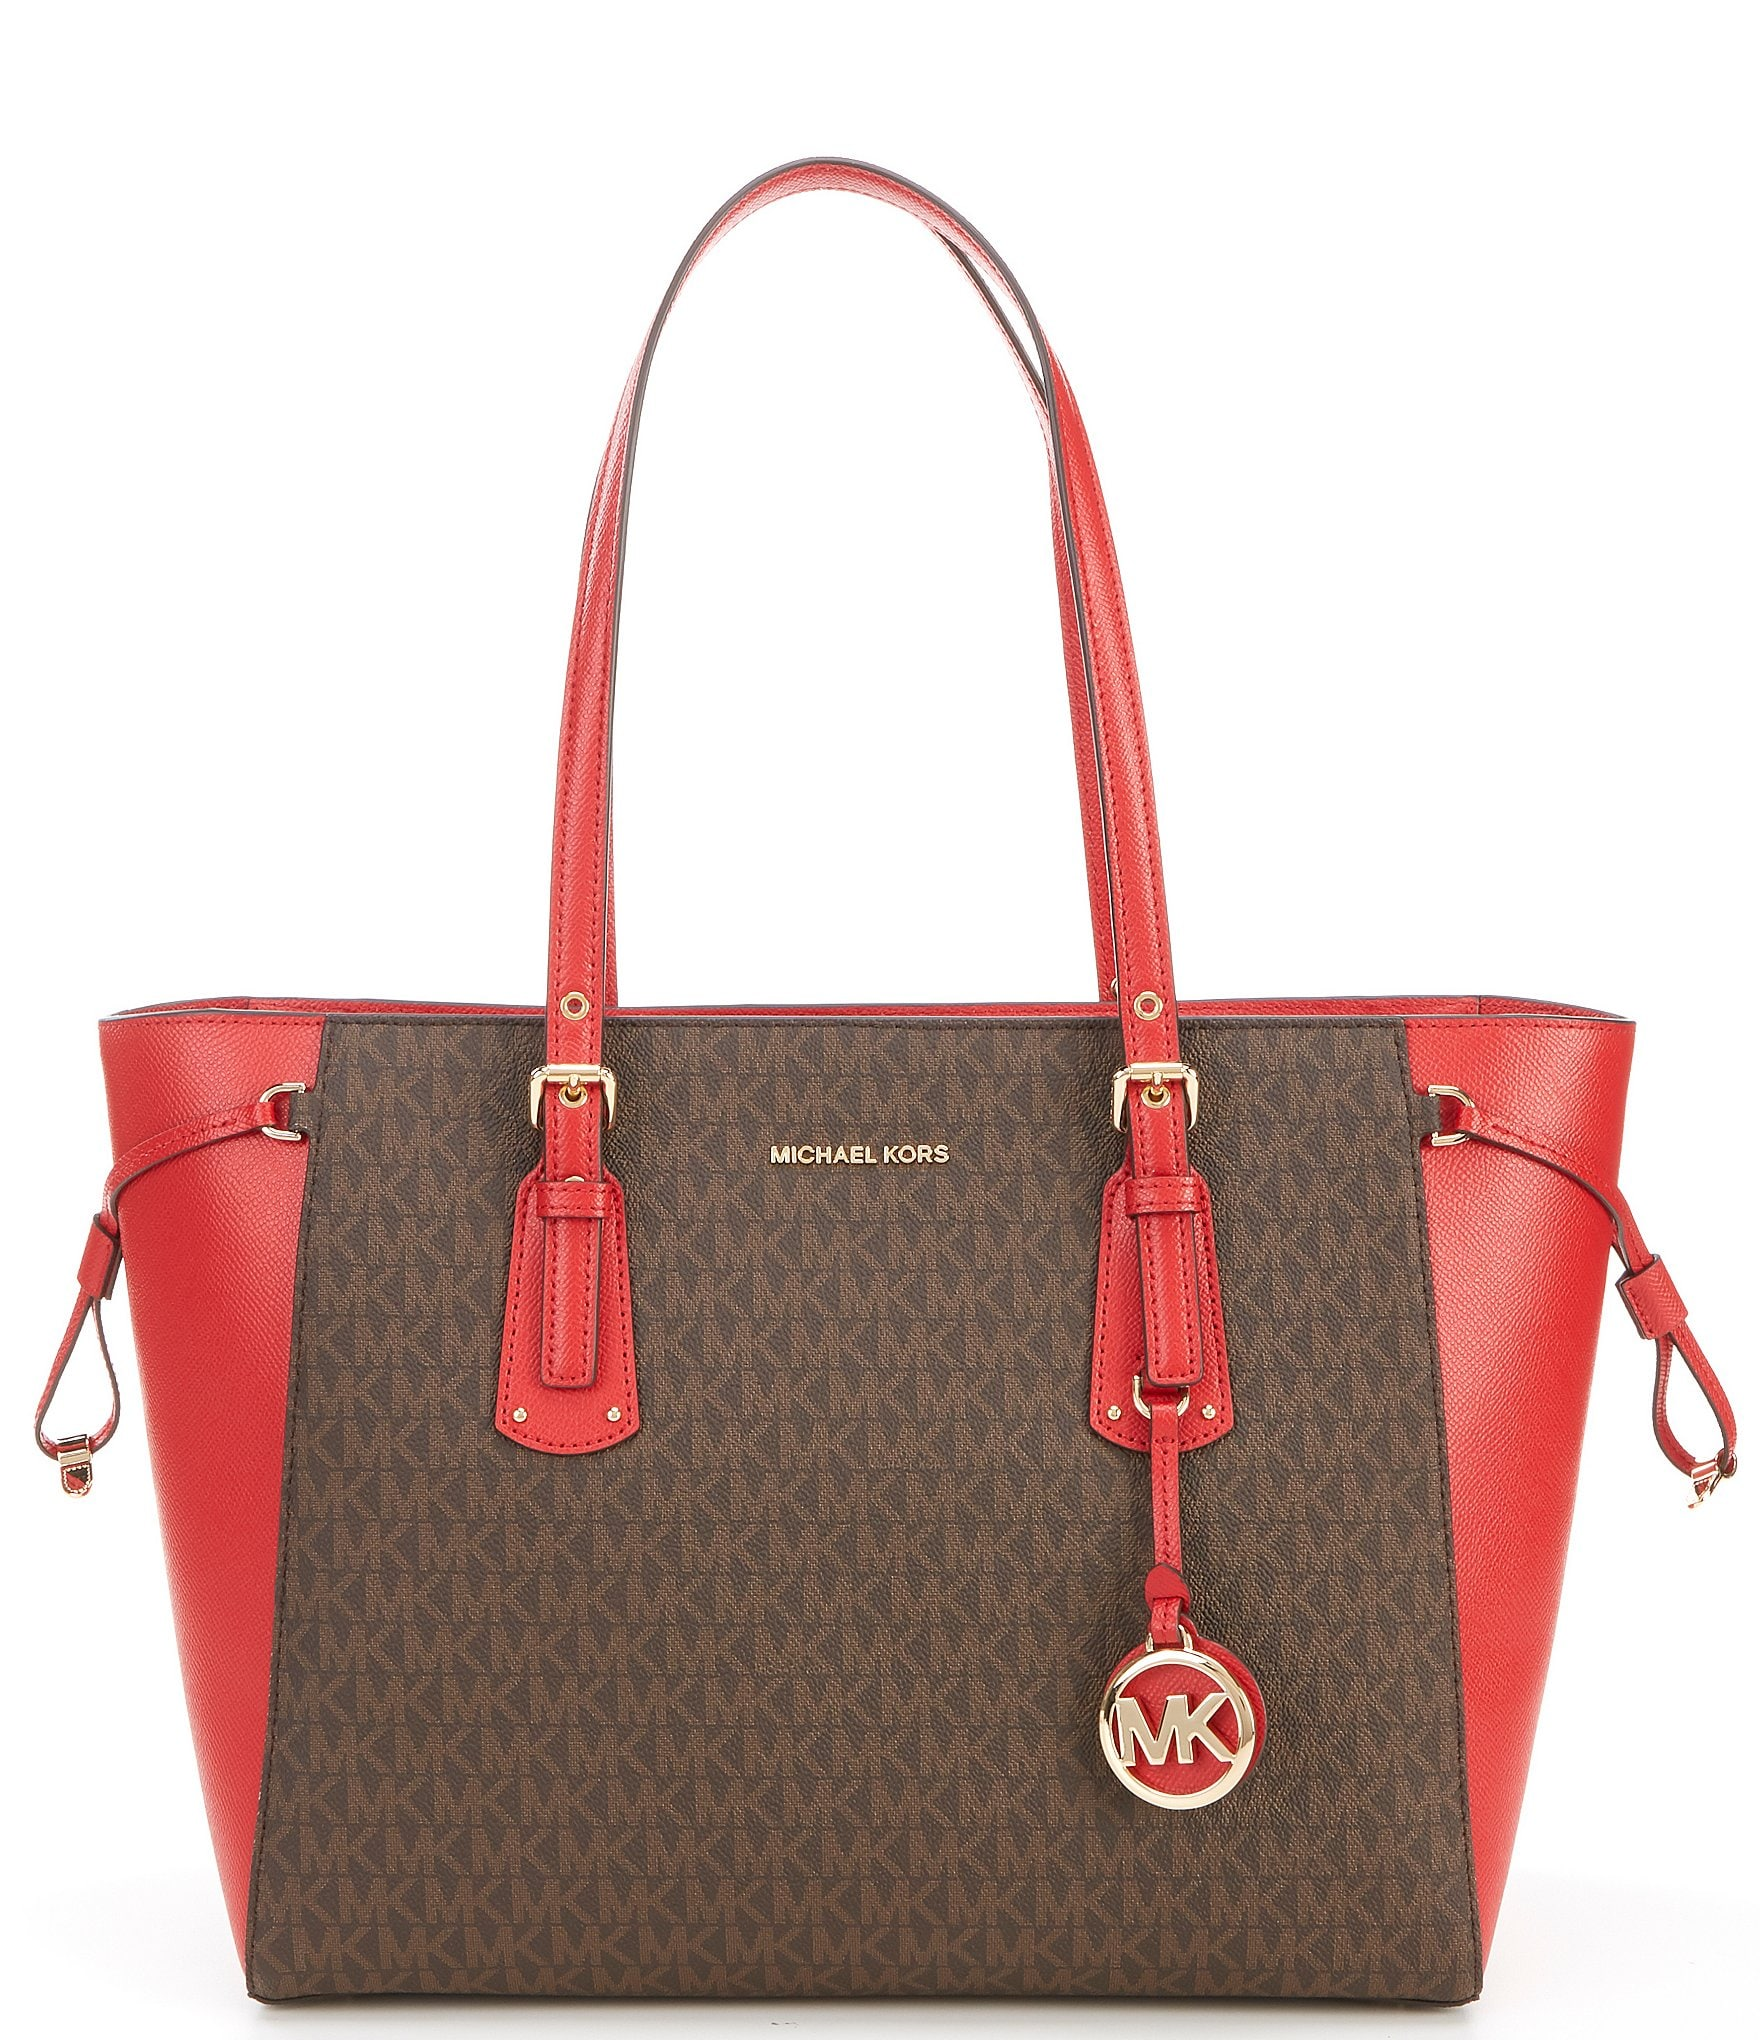 Michael Kors Tan Handbags Purses